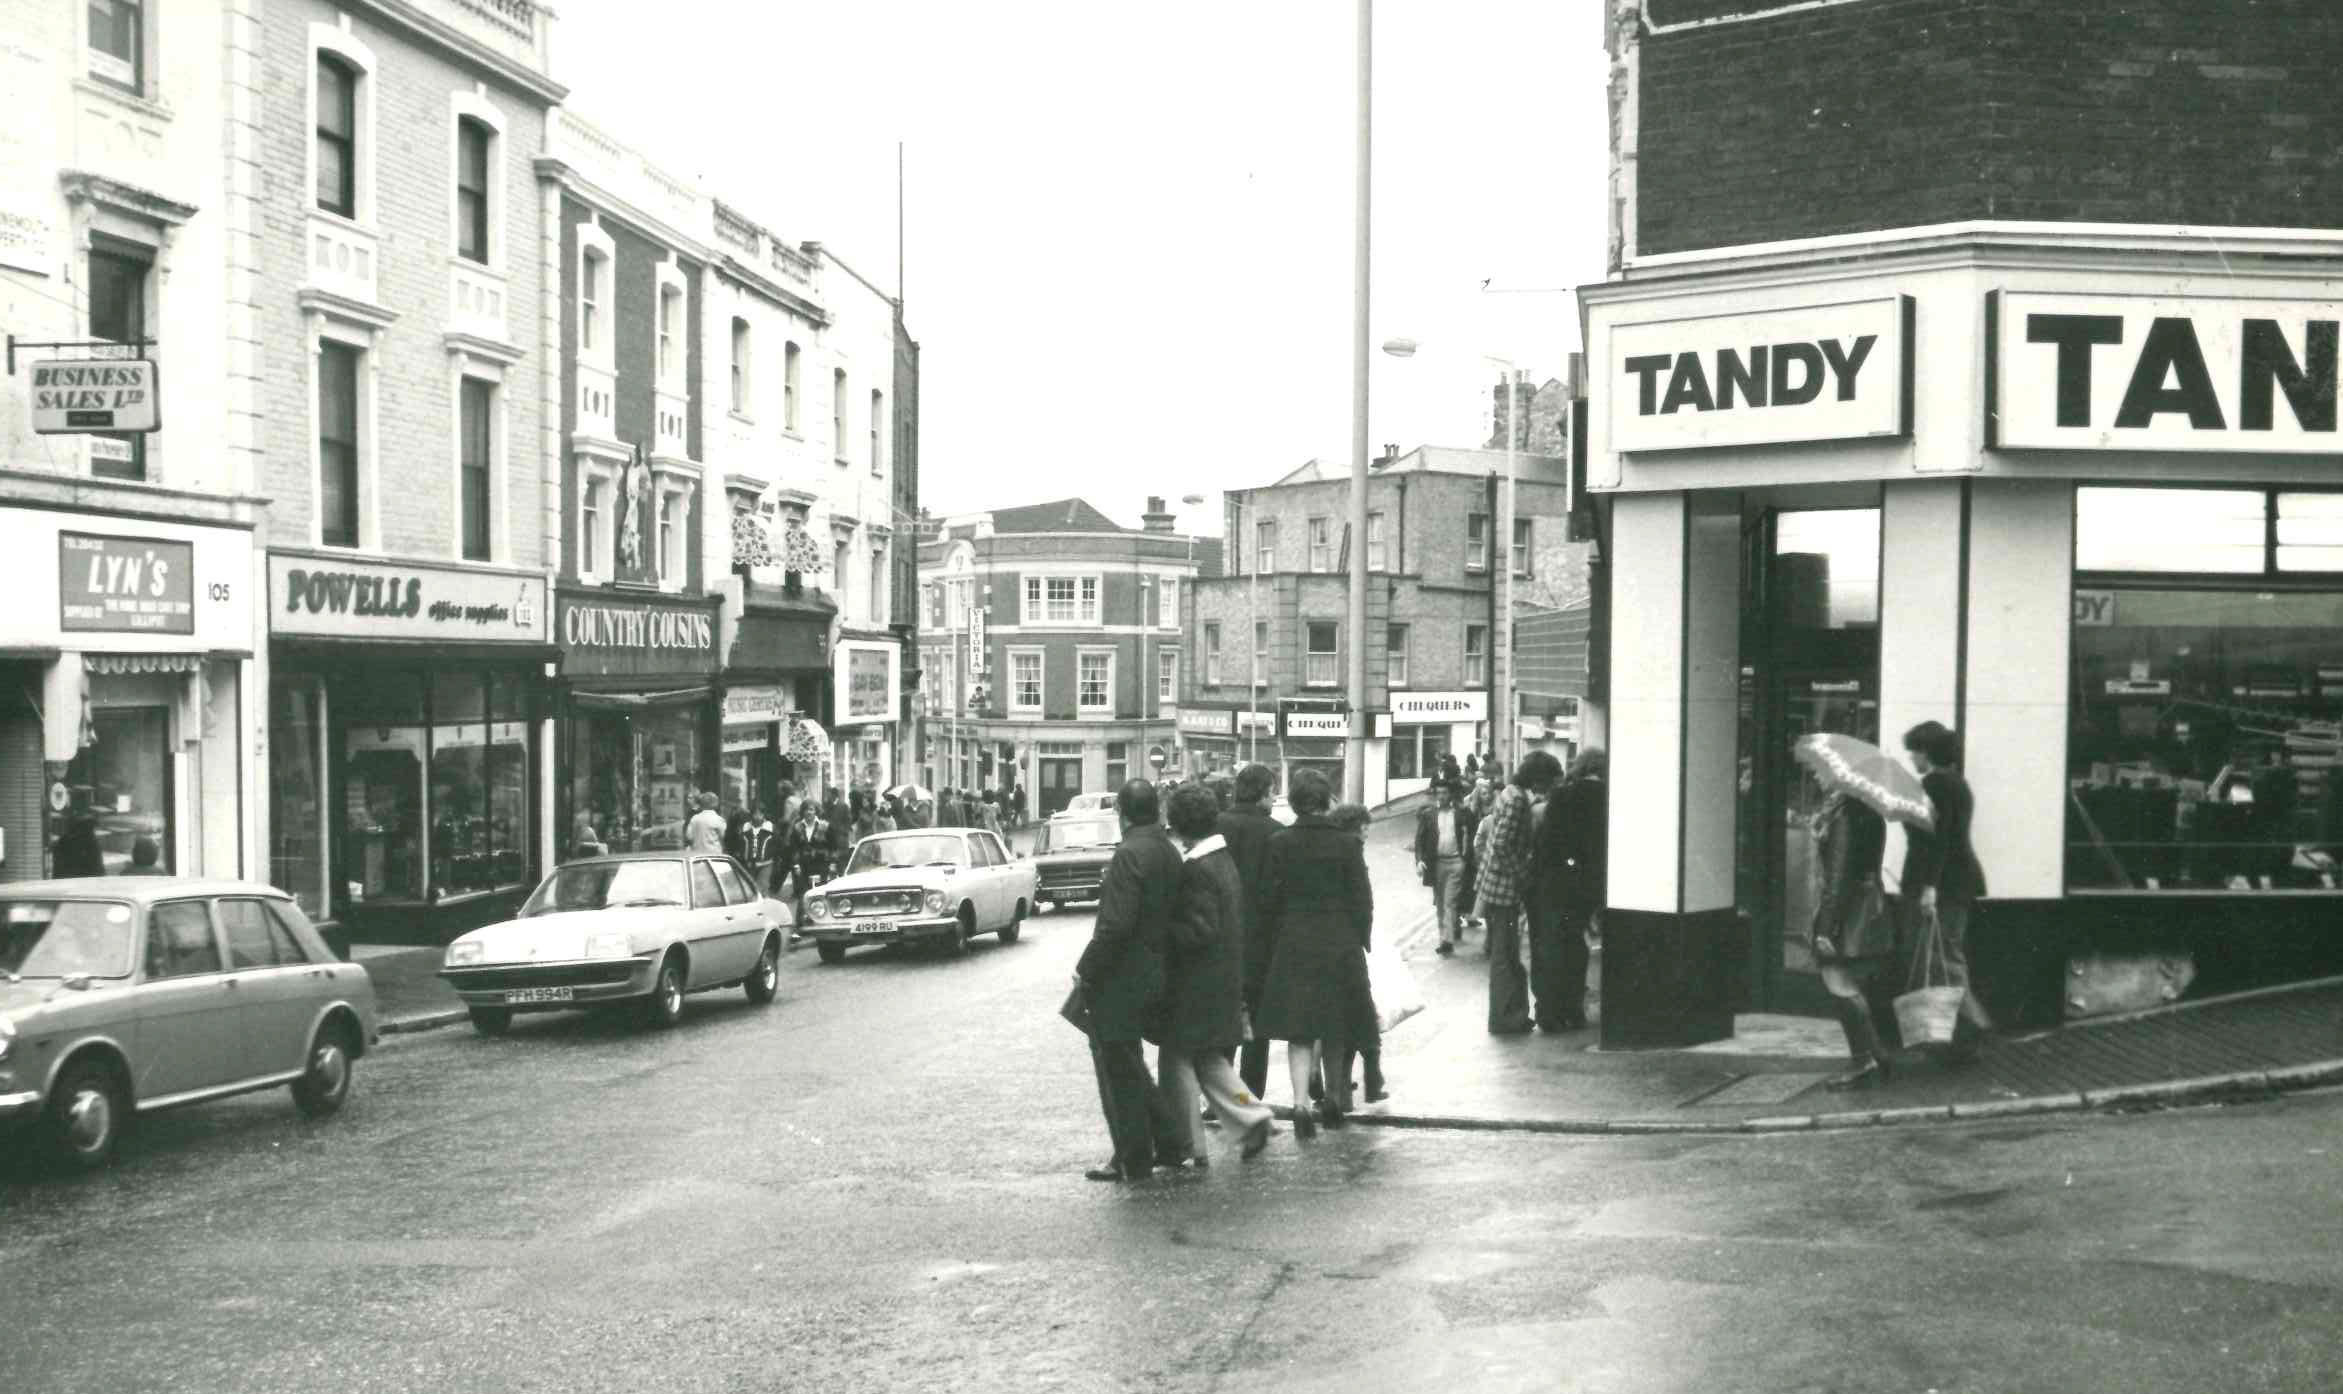 This picture taken from the corner of St Michael's Road looking down towards Commercial Road was taken in 1976.